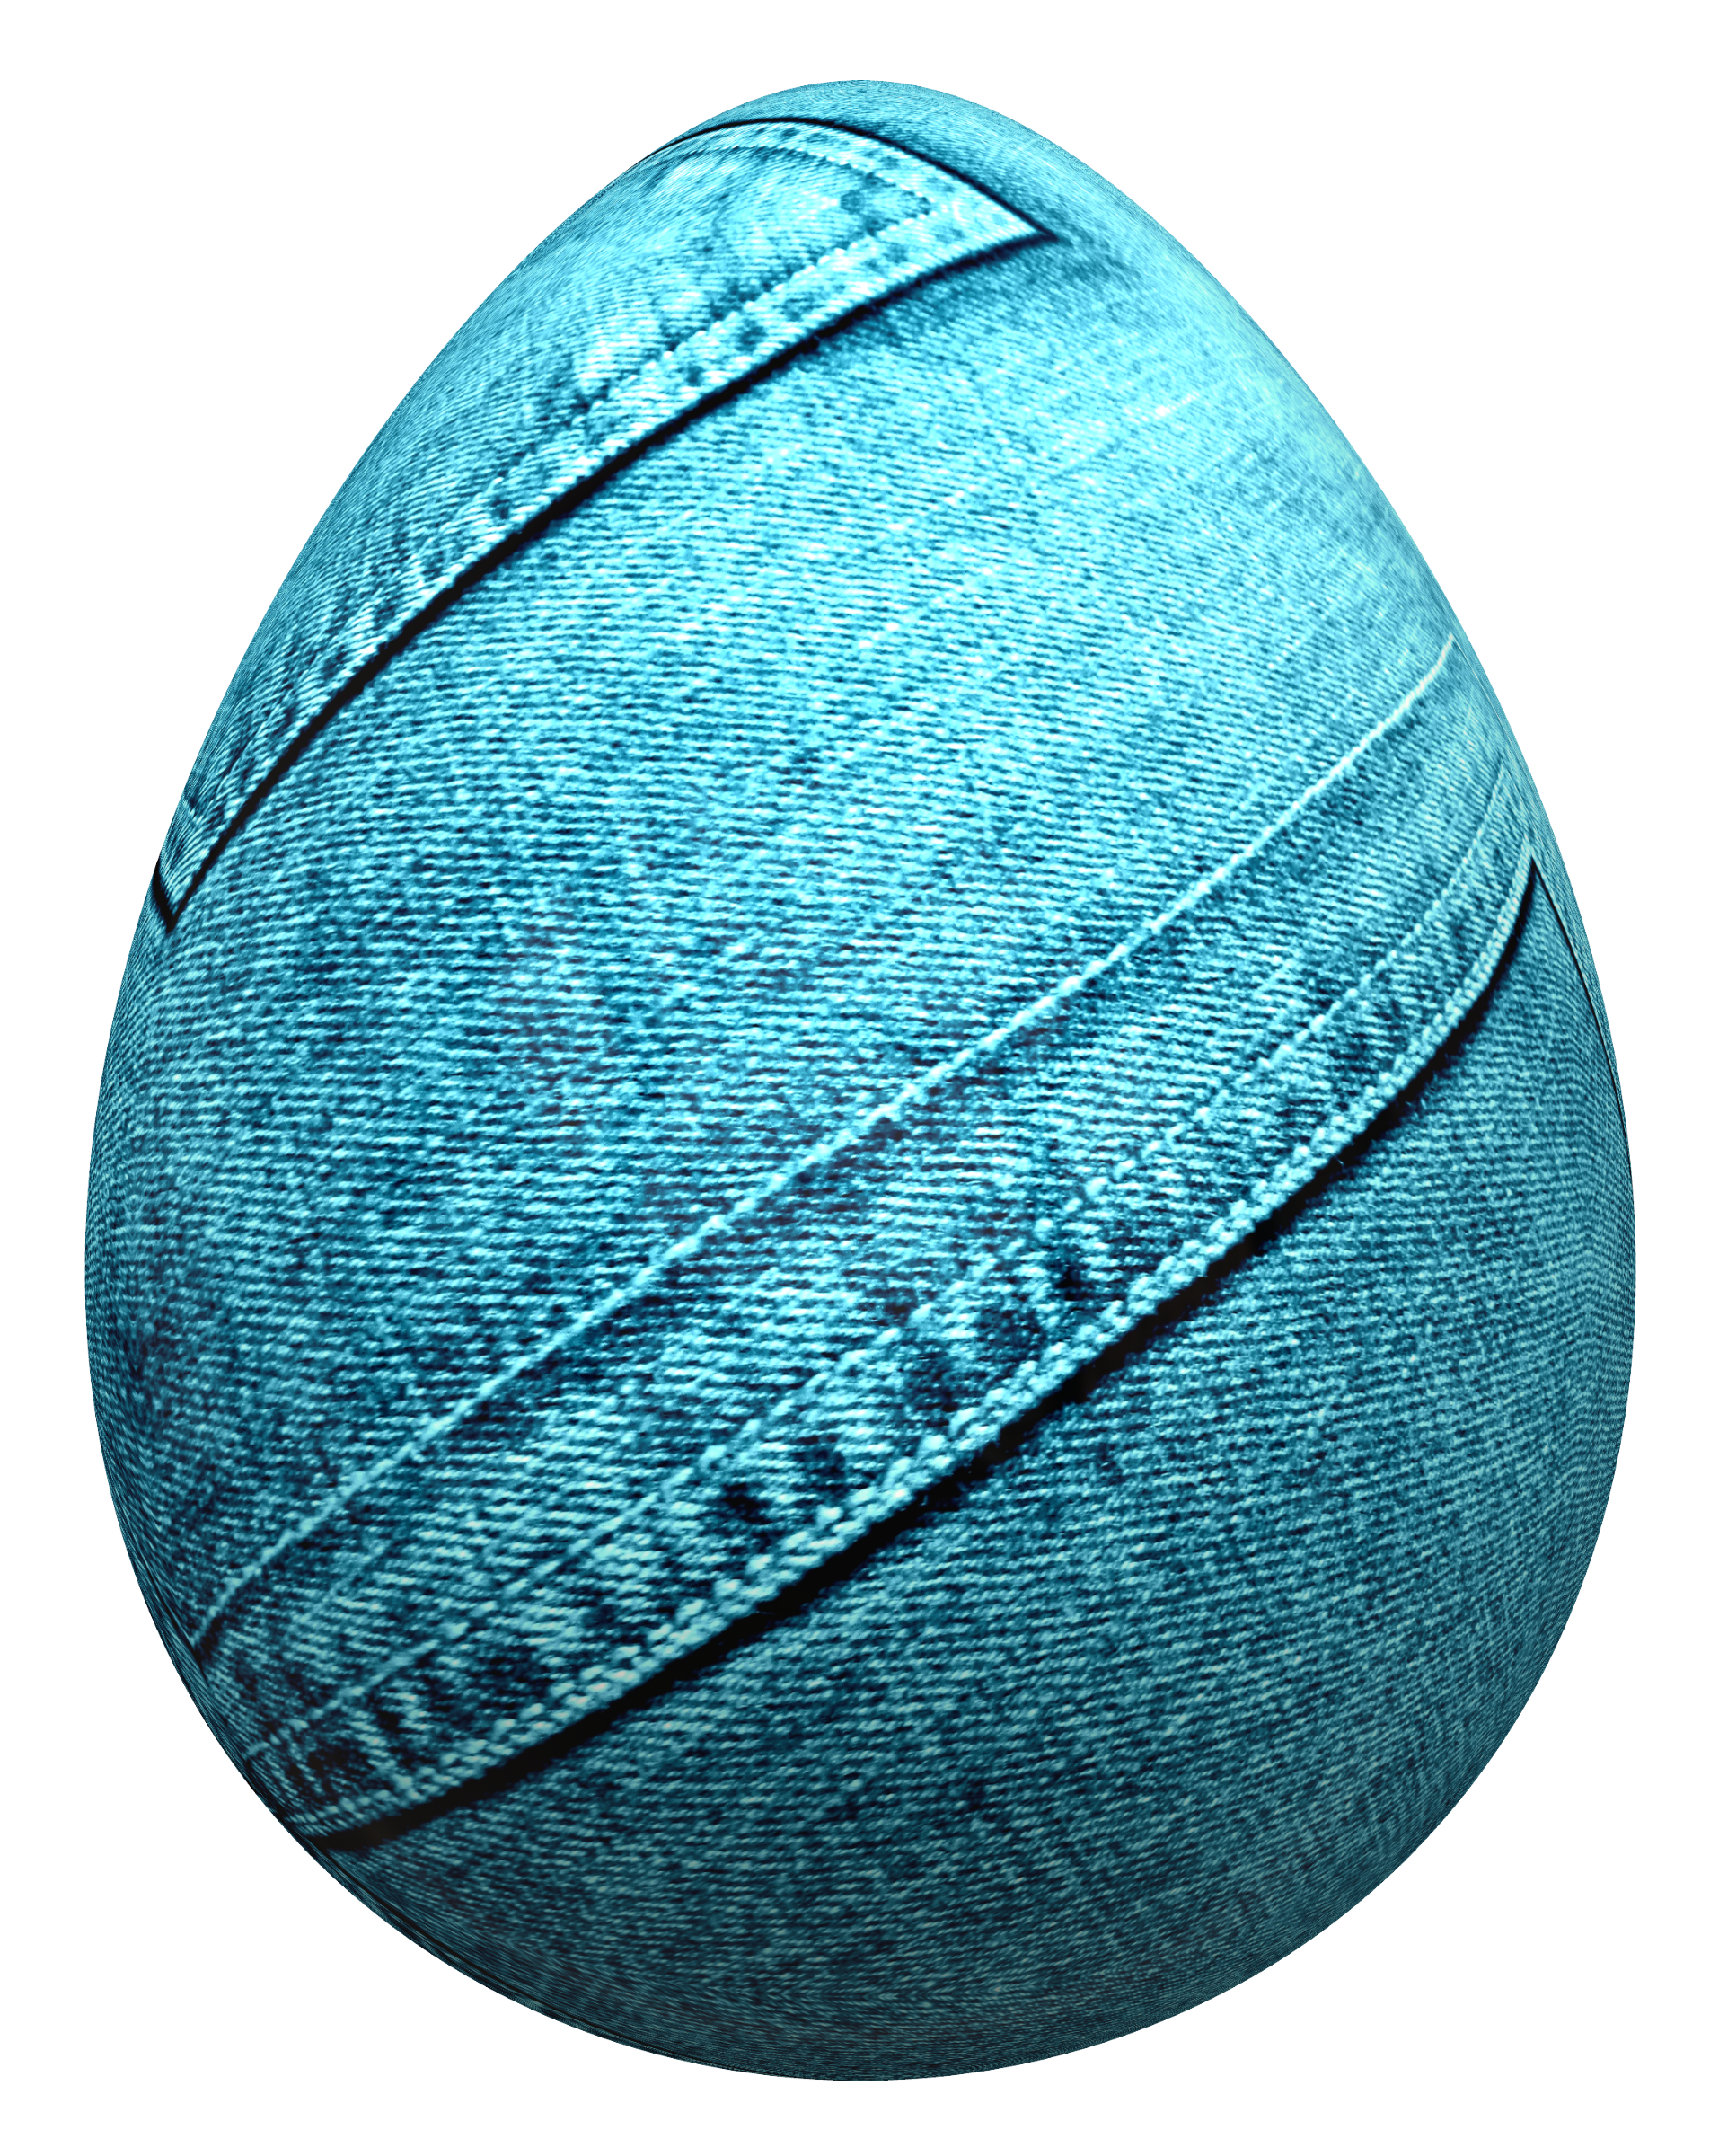 Egg Wrapped in Blue Jeans